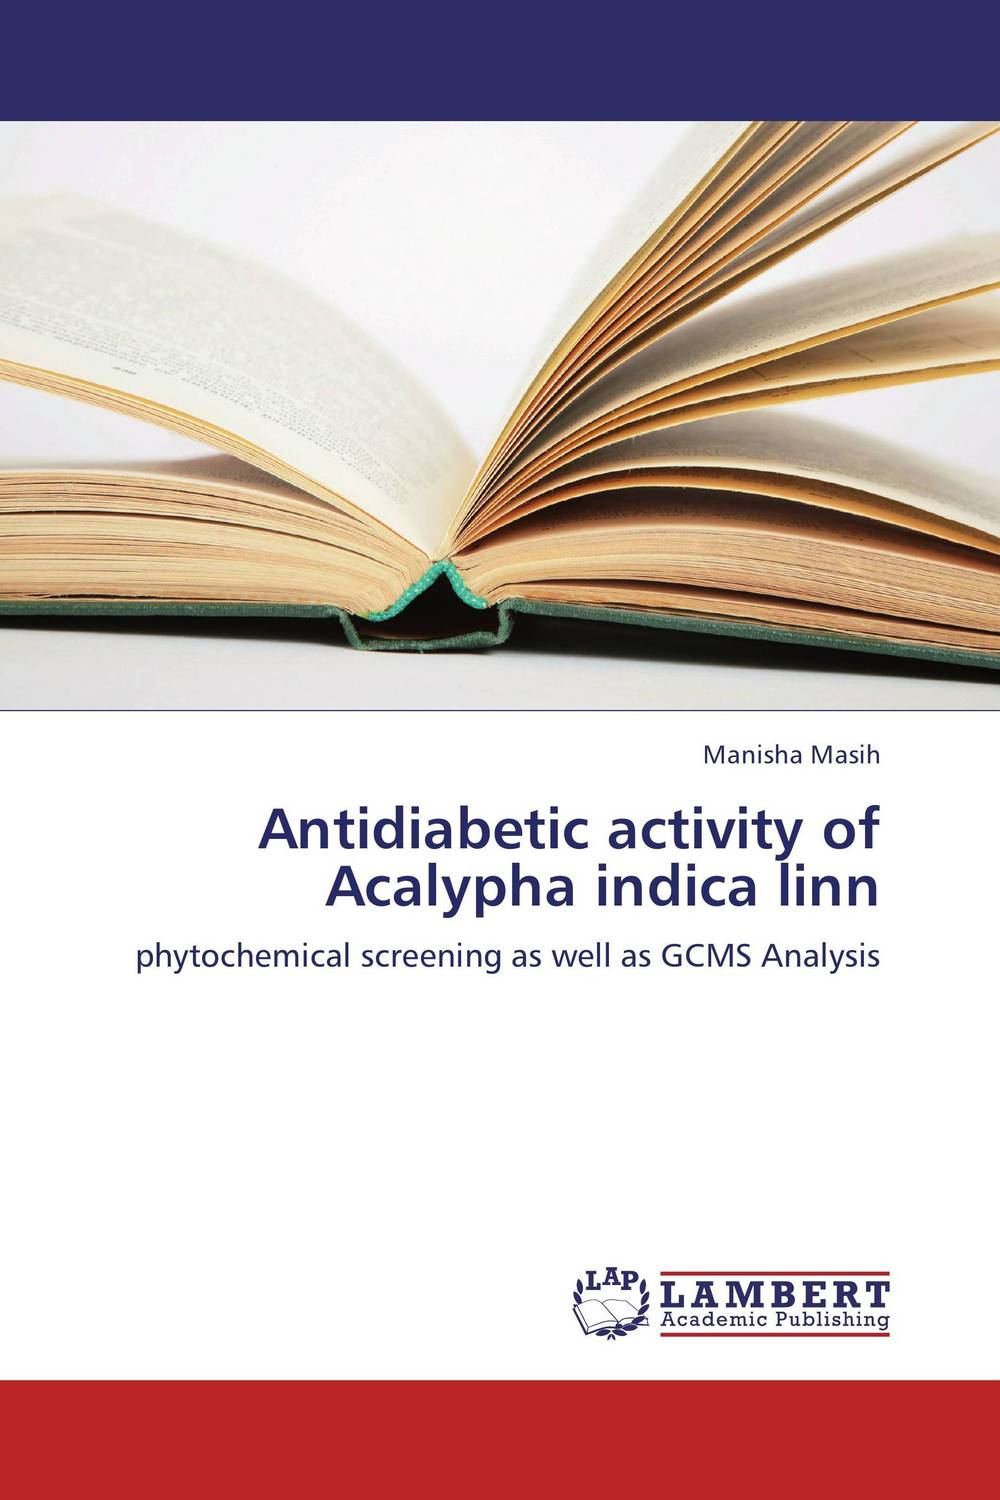 Antidiabetic activity of Acalypha indica linn phytochemical and pharmacognostical studies of family euphorbiaceae